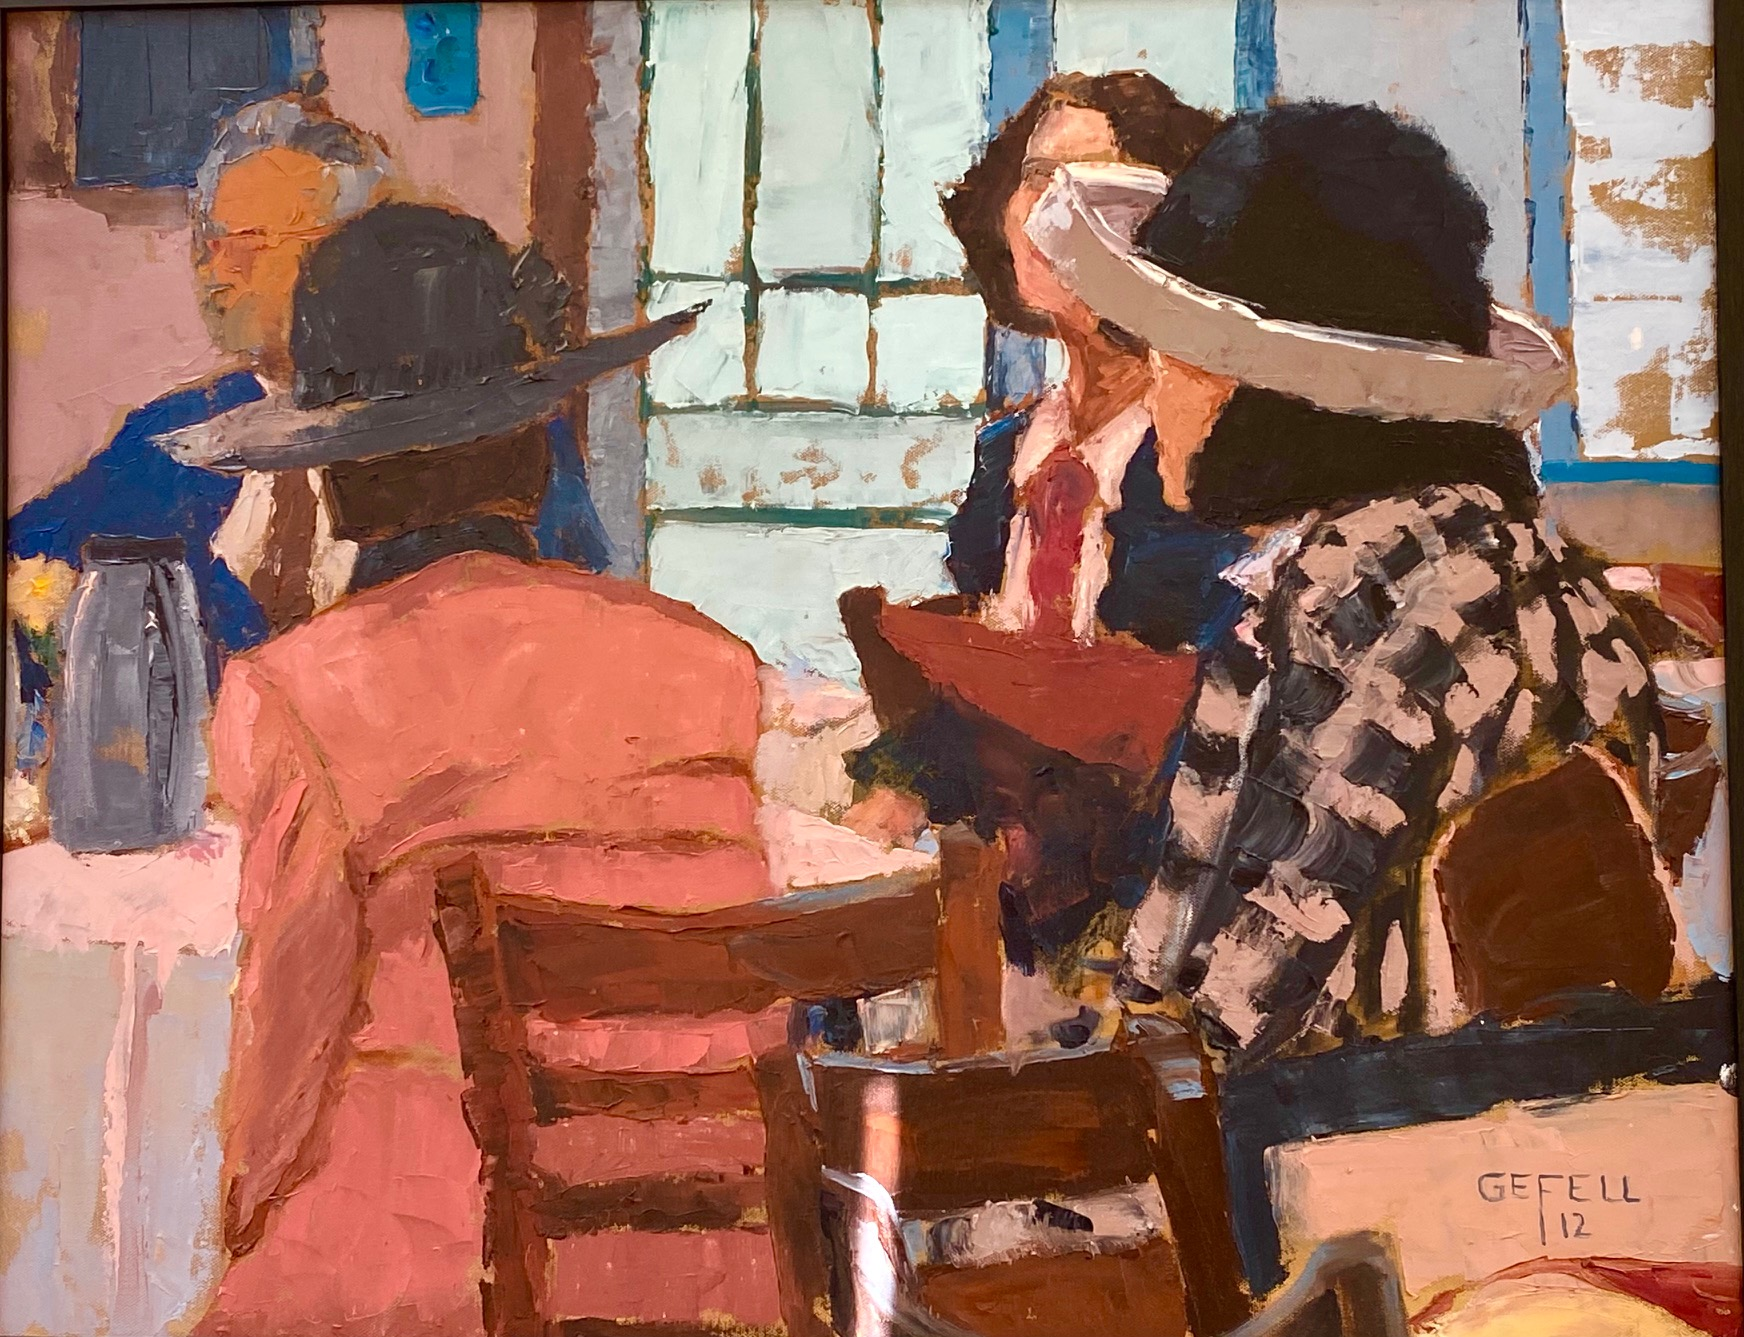 Hats (oil on canvas) by artist Kathleen Gefell, New York